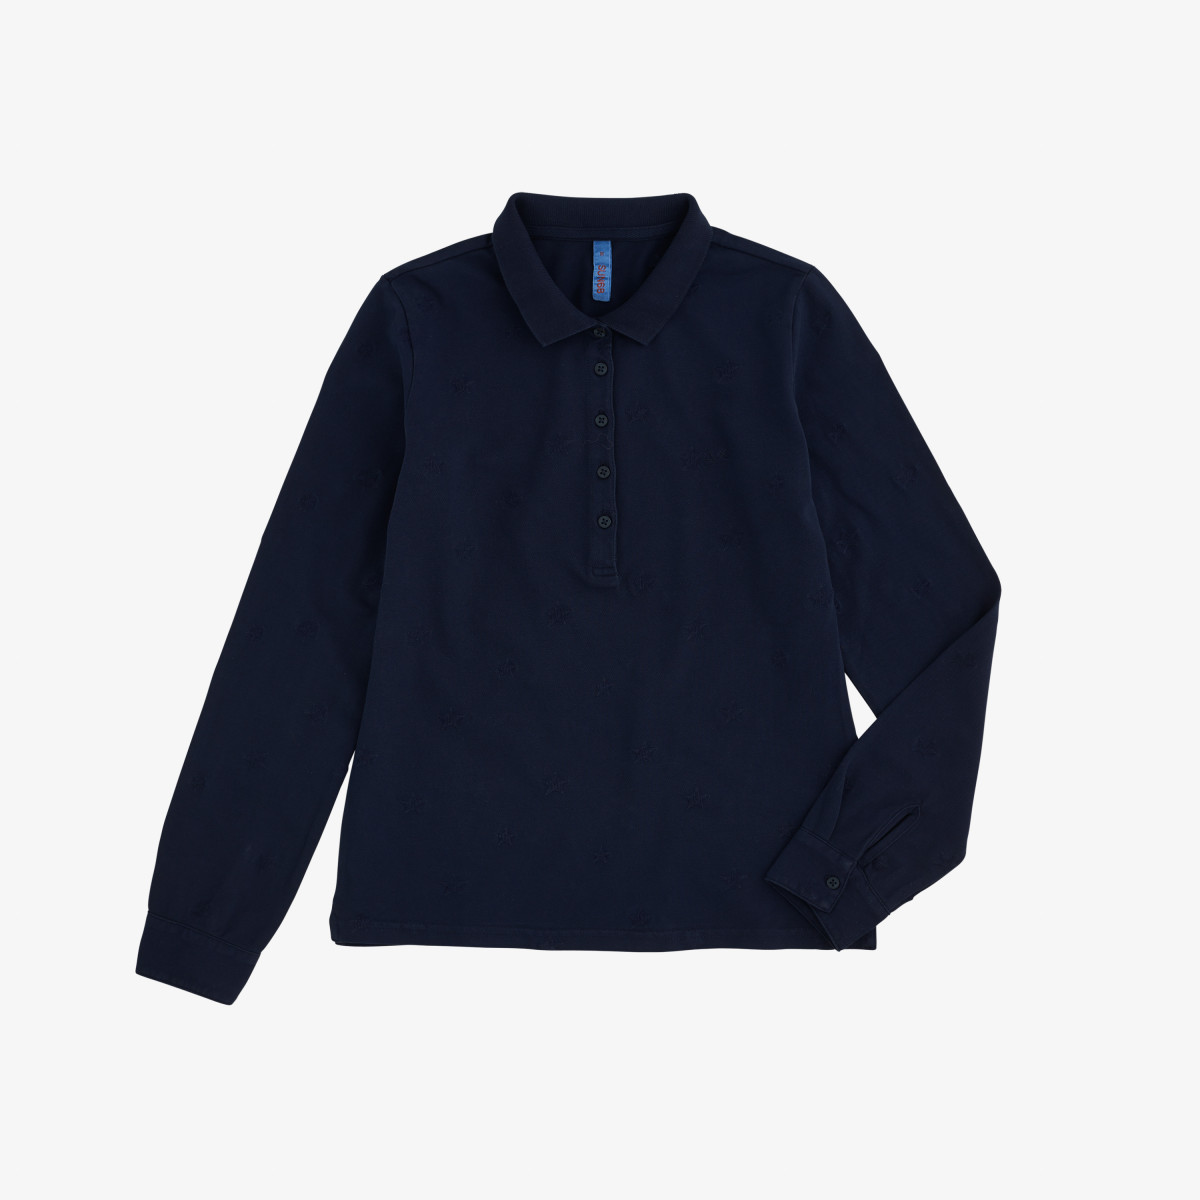 POLO EL. FULL EMB.COLD DYE L/S NAVY BLUE